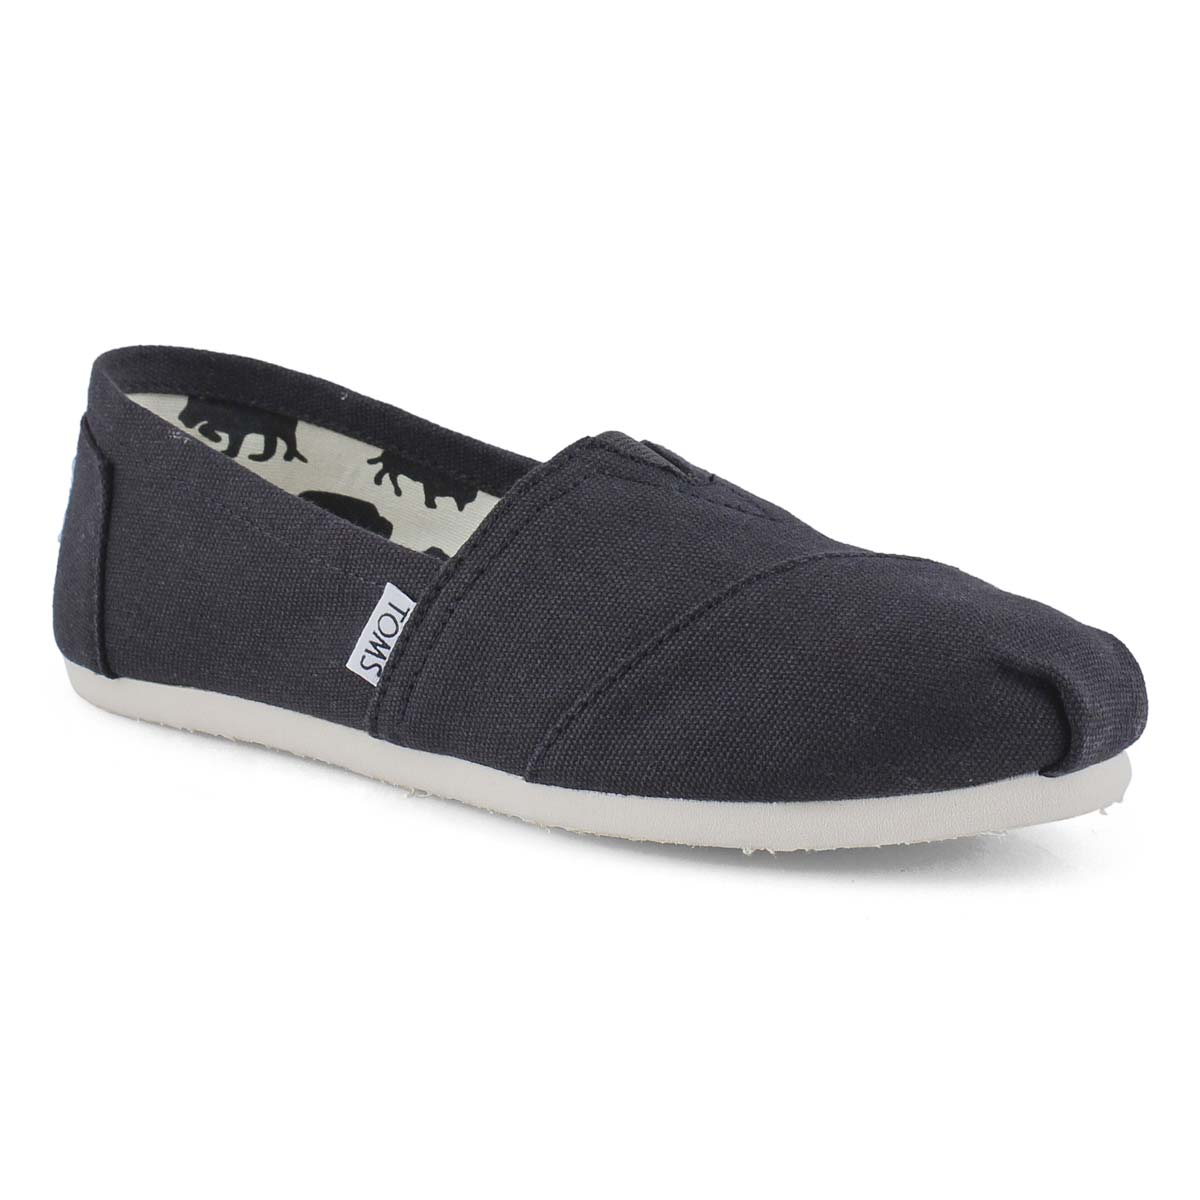 Women's Classic Canvas Loafer - Black